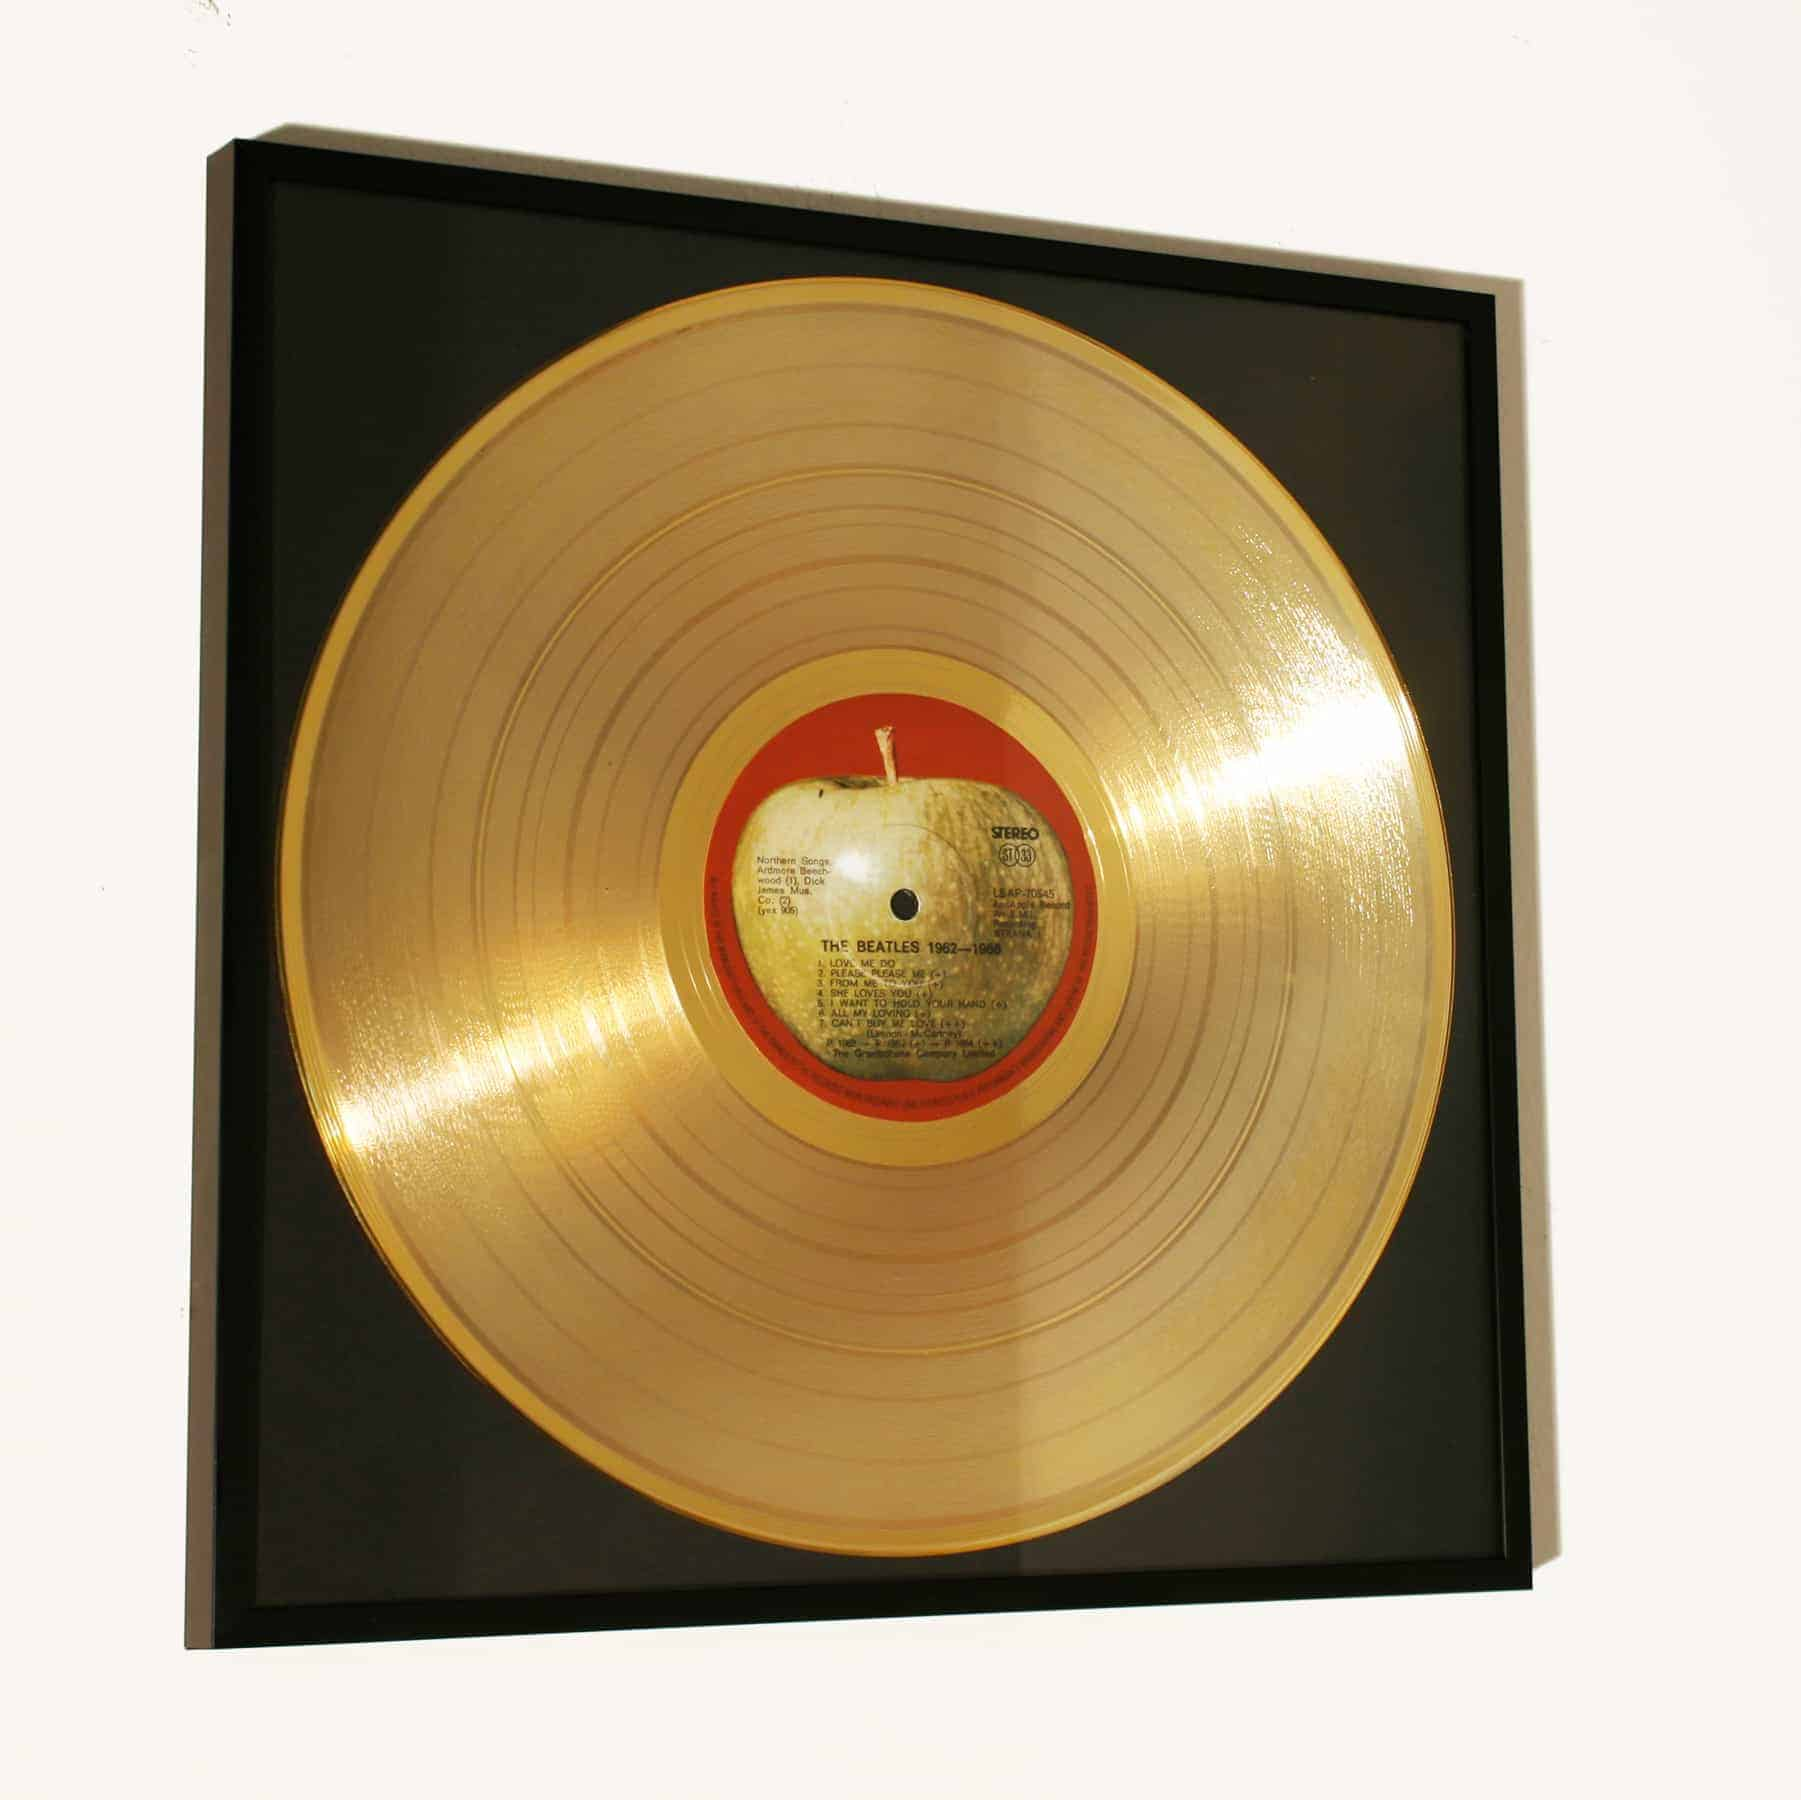 THE BEATLES commemorative GOLD FRAMED RECORD